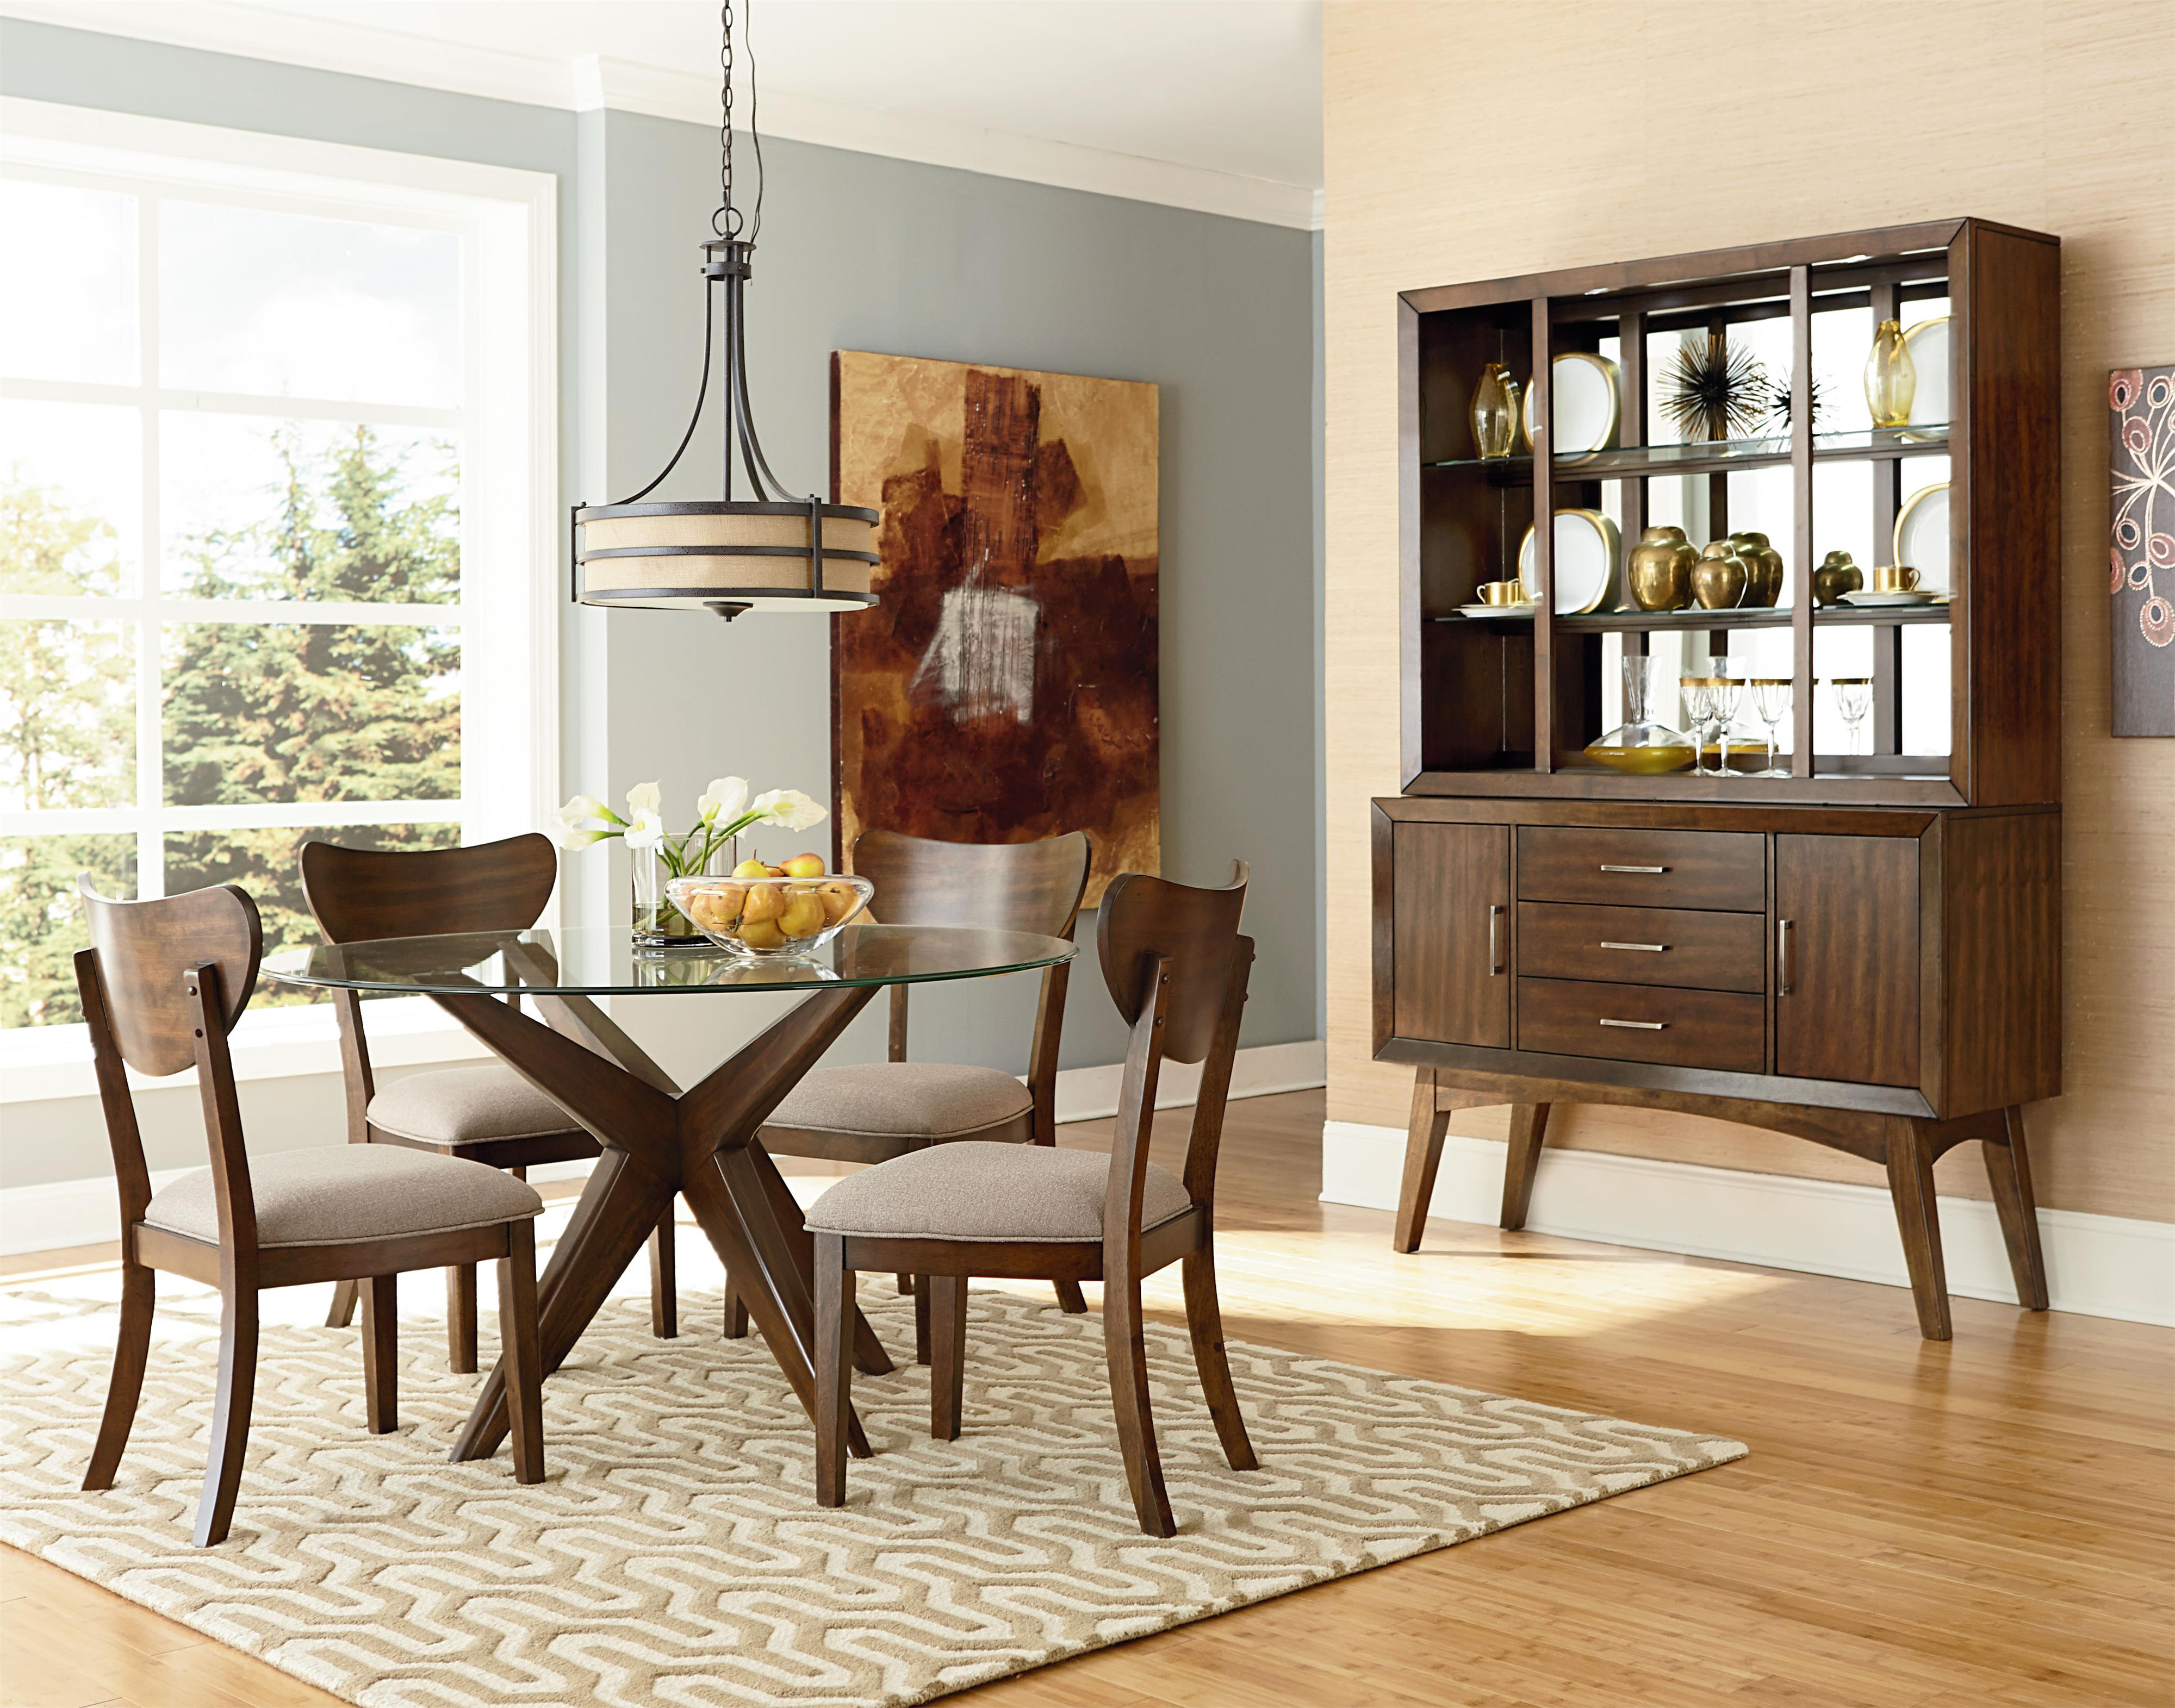 Standard Furniture Roxbury Casual Dining Room Group - Item Number: 16200 Dining Room Group 4